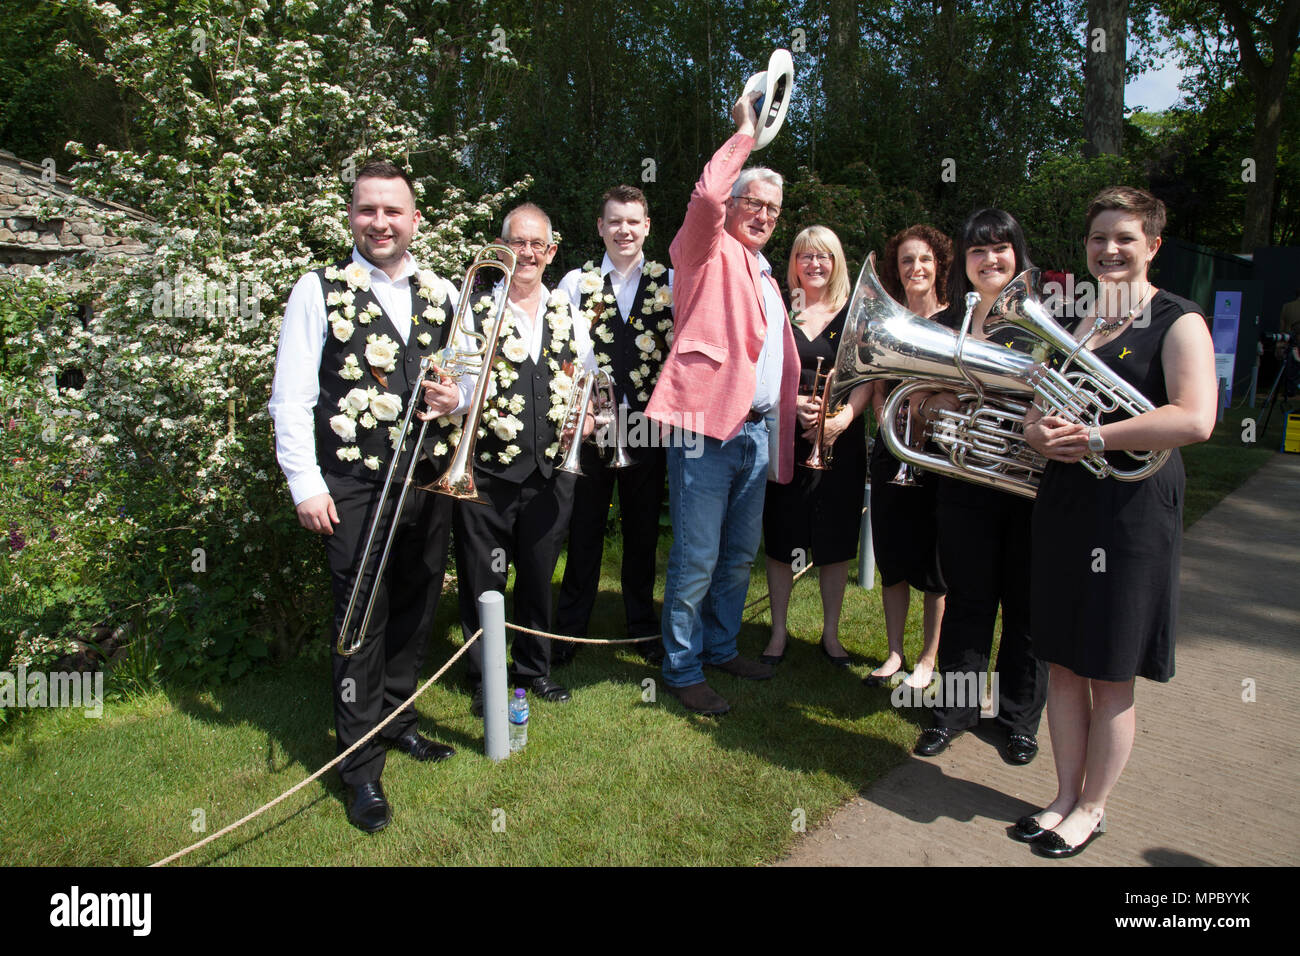 Chelsea, London, UK. 21st May, 2018. Chelsea, London, UK. 21st May 2018. Jeremy Paxman with the City of Bradford Brass Band on the Welcome to Yorkshire garden at Chelsea Flower Show 2018, designed by Mark Gregory for Landformconsultants.co.uk Credit: Jenny Lilly/Alamy Live News - Stock Image